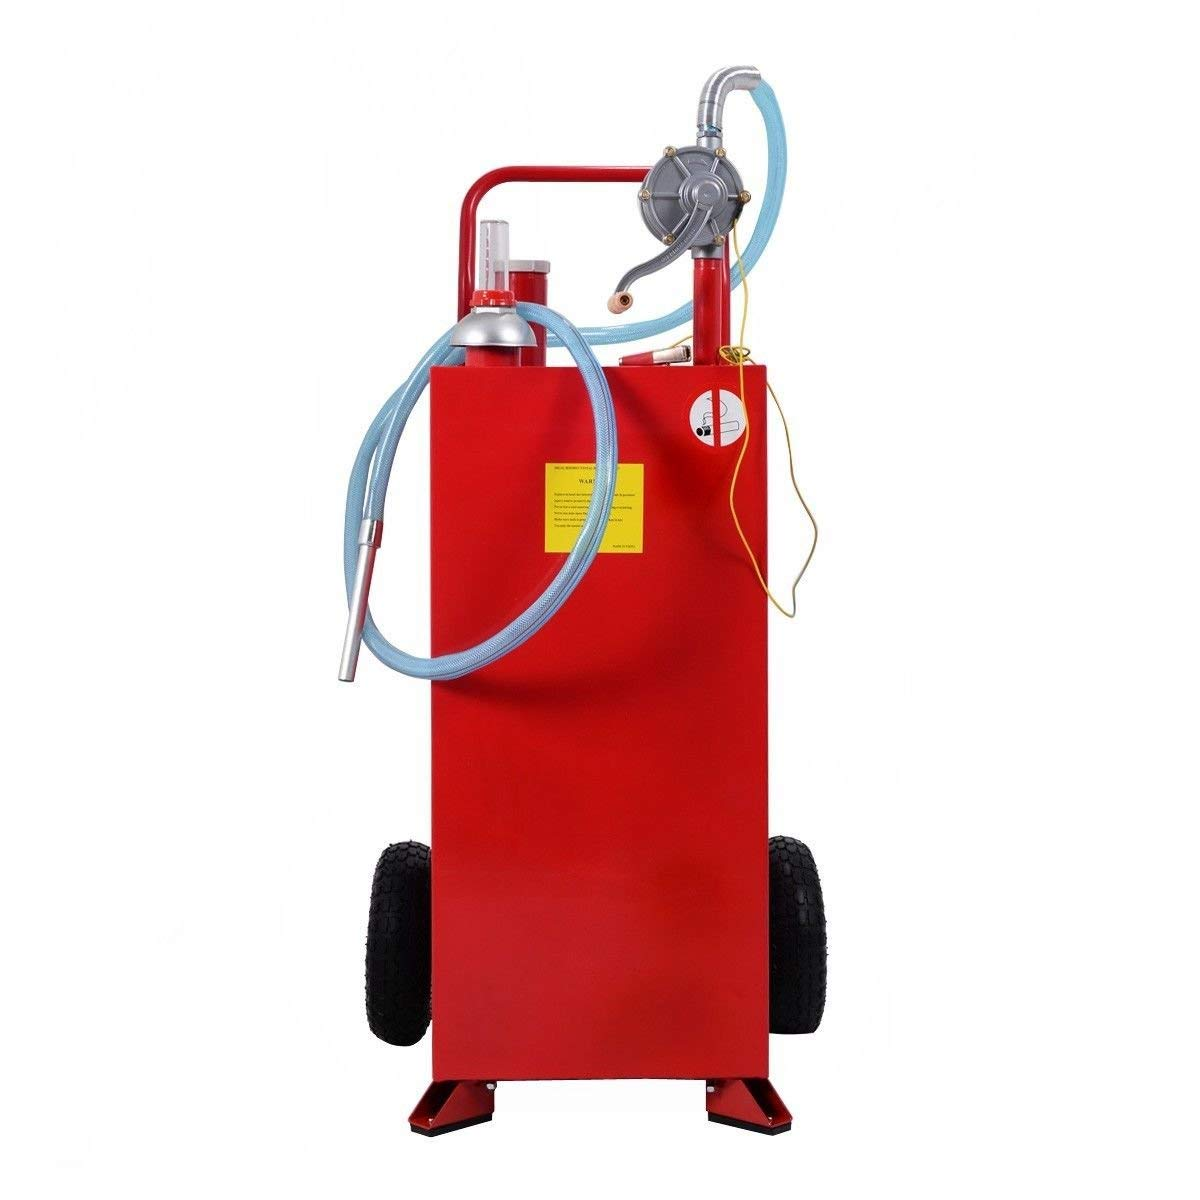 Goplus 30 Gallon Gas Caddy, Fuel Diesel Storage Tank, Rugged Durable Material, Anti-Static Ground Clamp, Labor-Saving Hand Operated Defueling Pump, 8 Feet Discharge Hose Red Caddy (Red) by Goplus (Image #2)